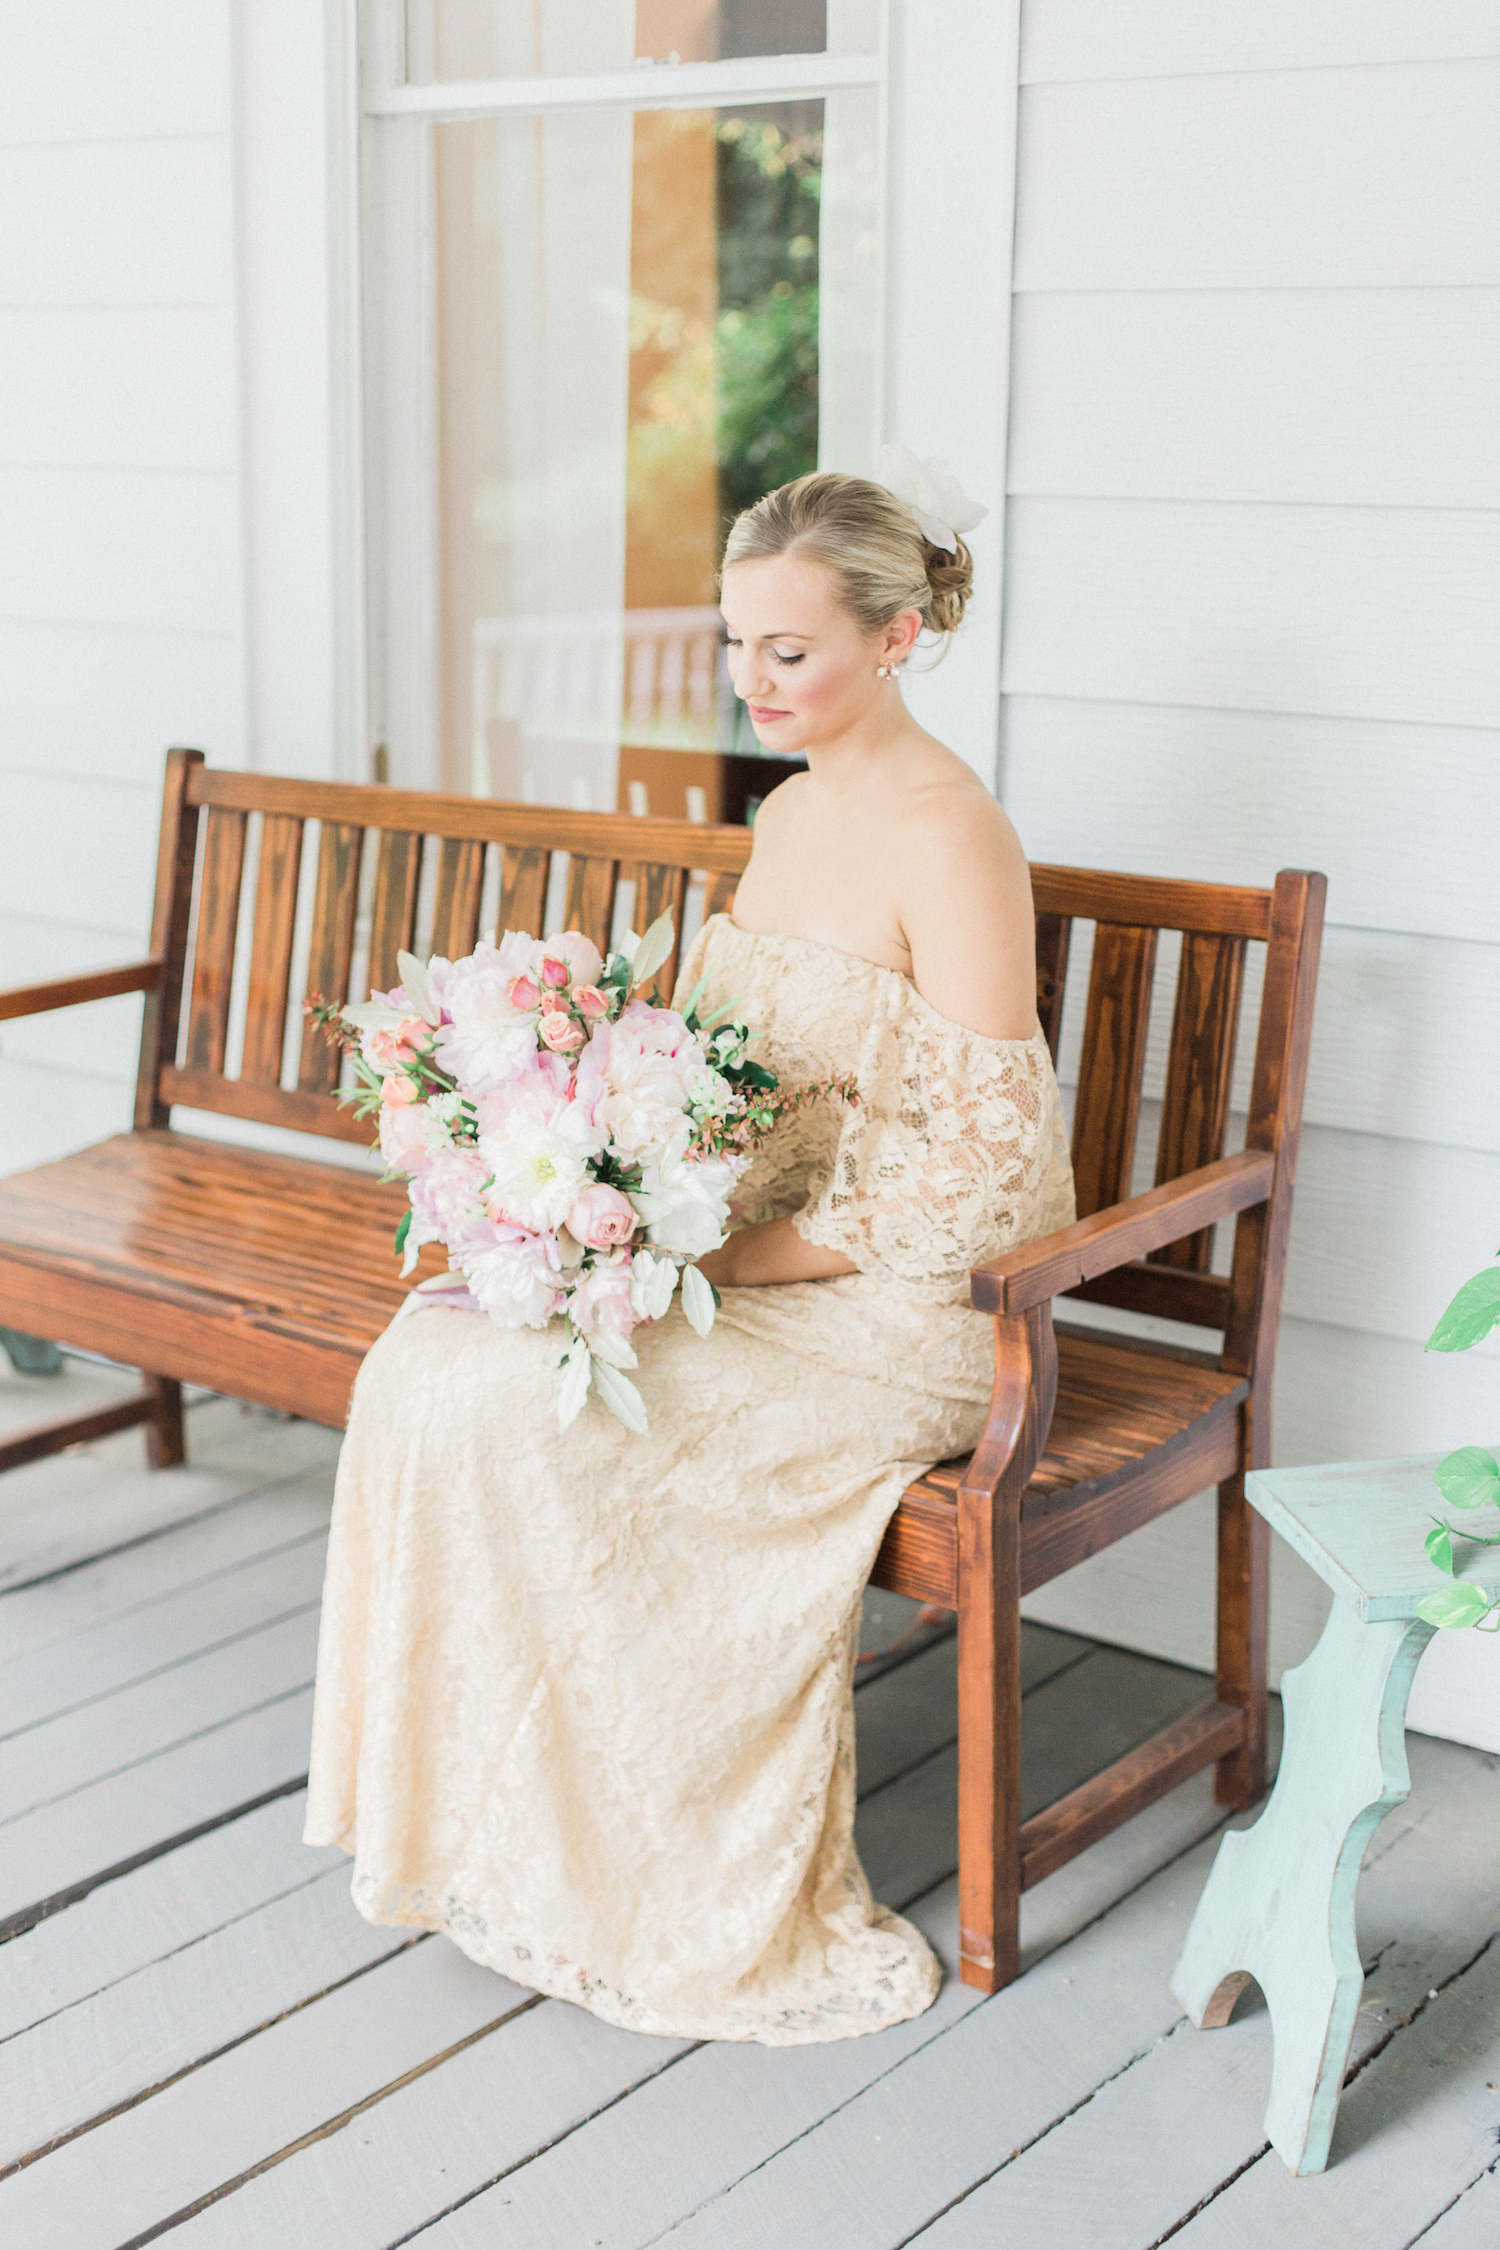 Wrap around porch wedding. Gold lace off shoulder wedding dress with bridal undo hairstyle.